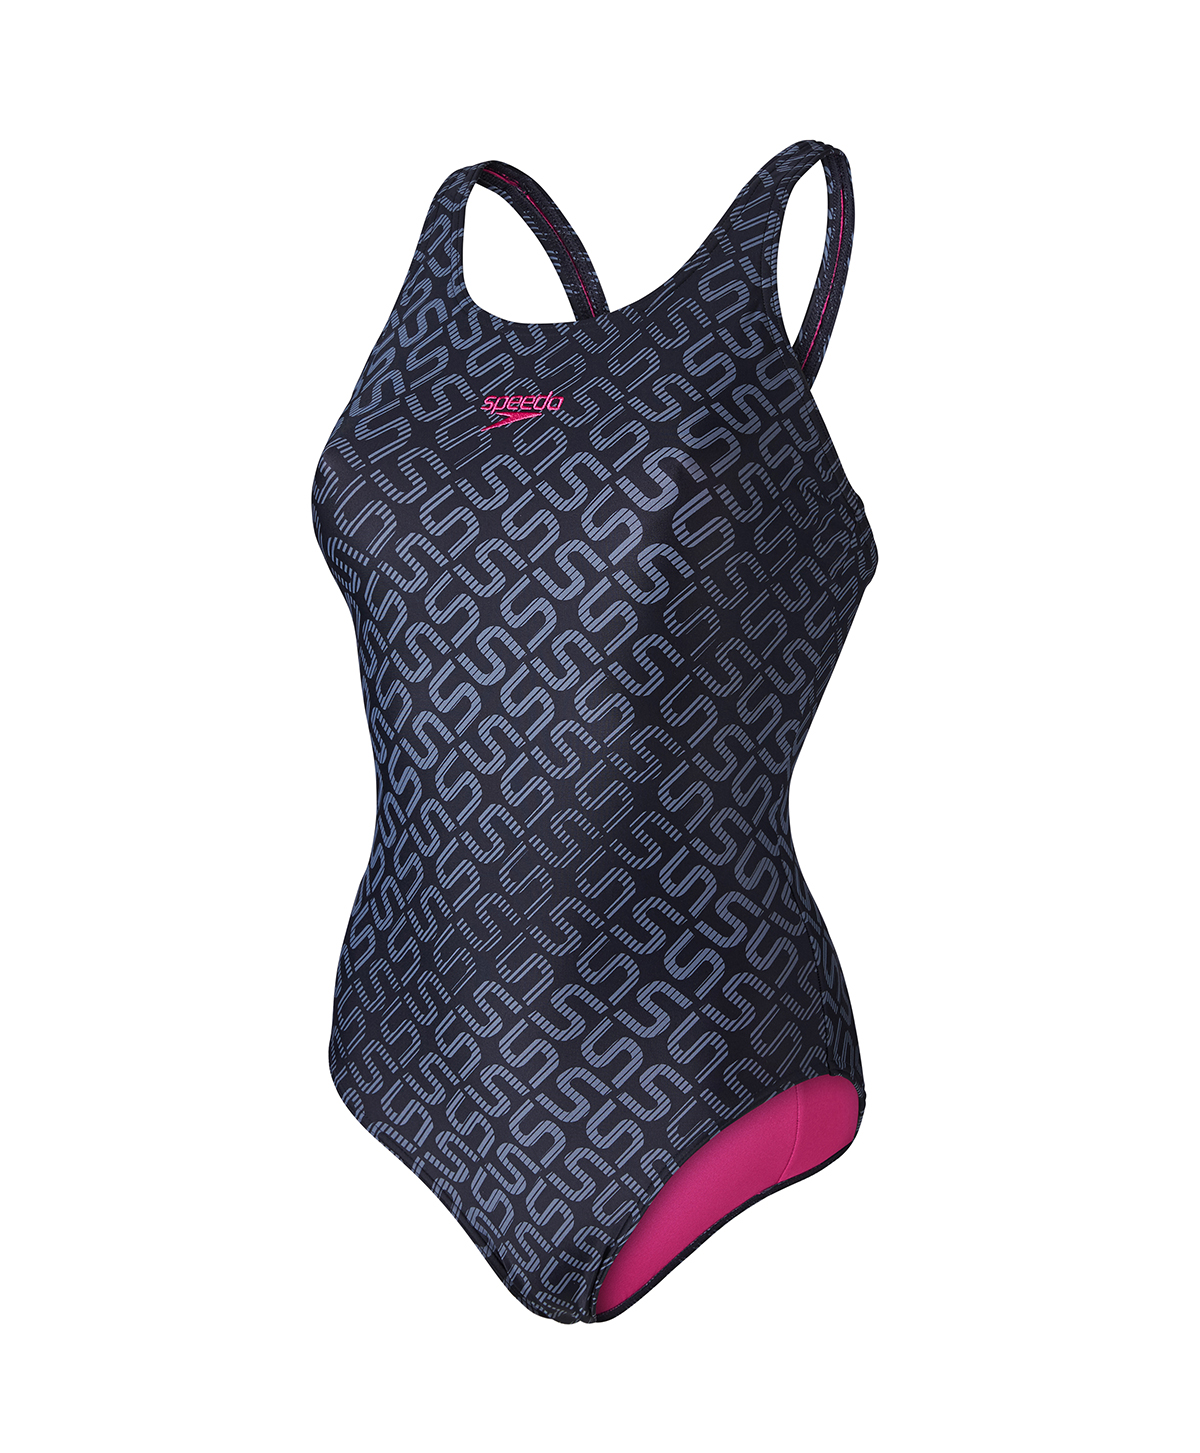 Speedo Ladies Monogram Allover Muscleback